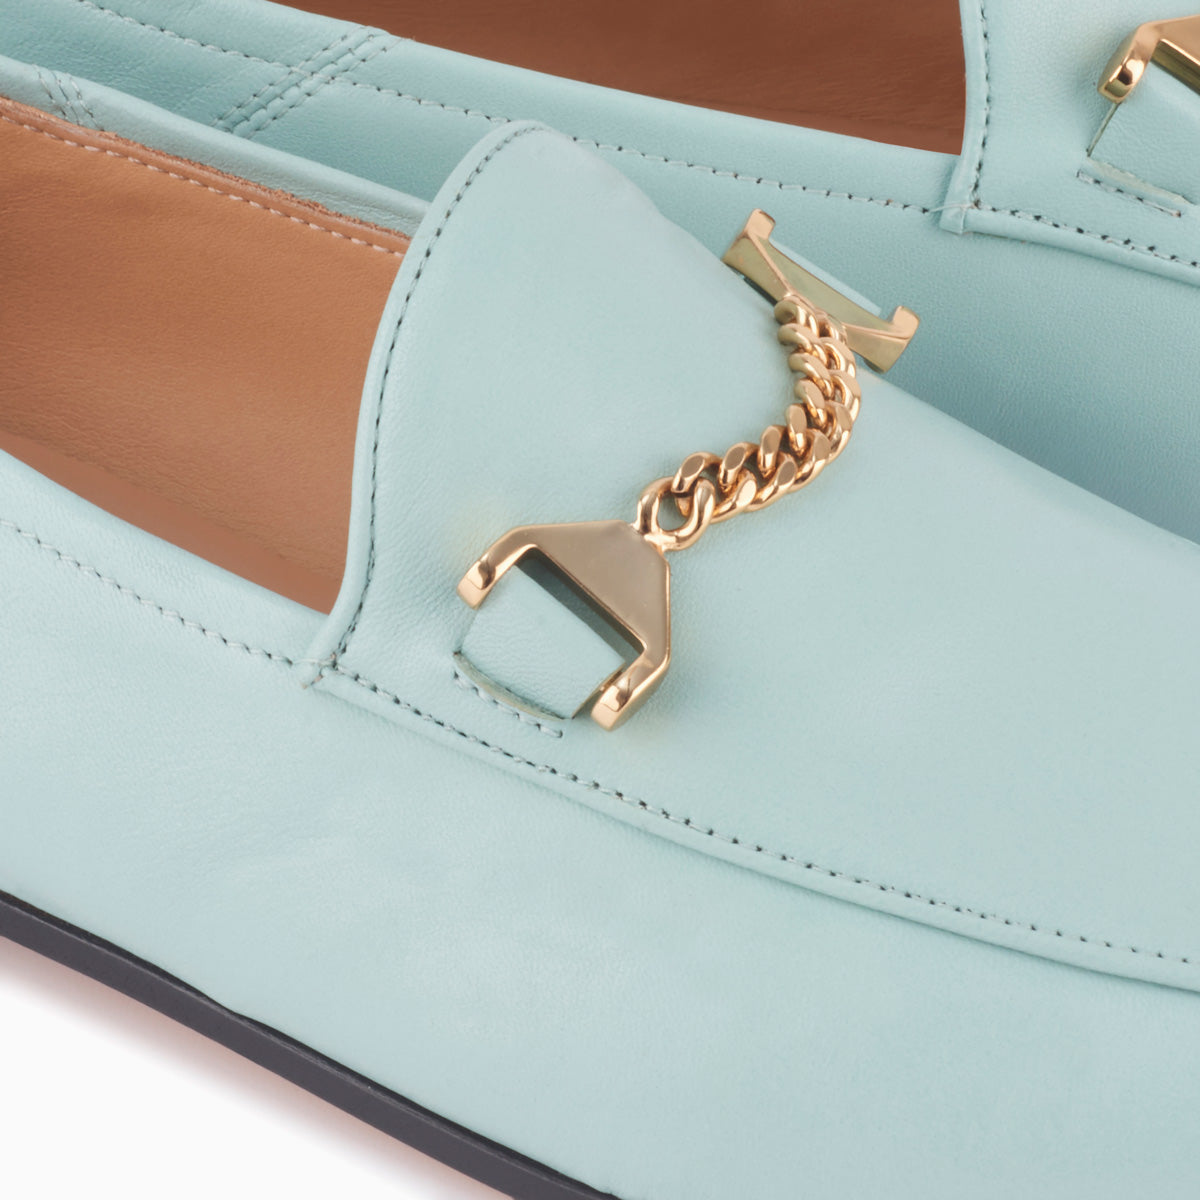 Hyusto Debbie Loafer Mint Glove Gold Detail of the accessories